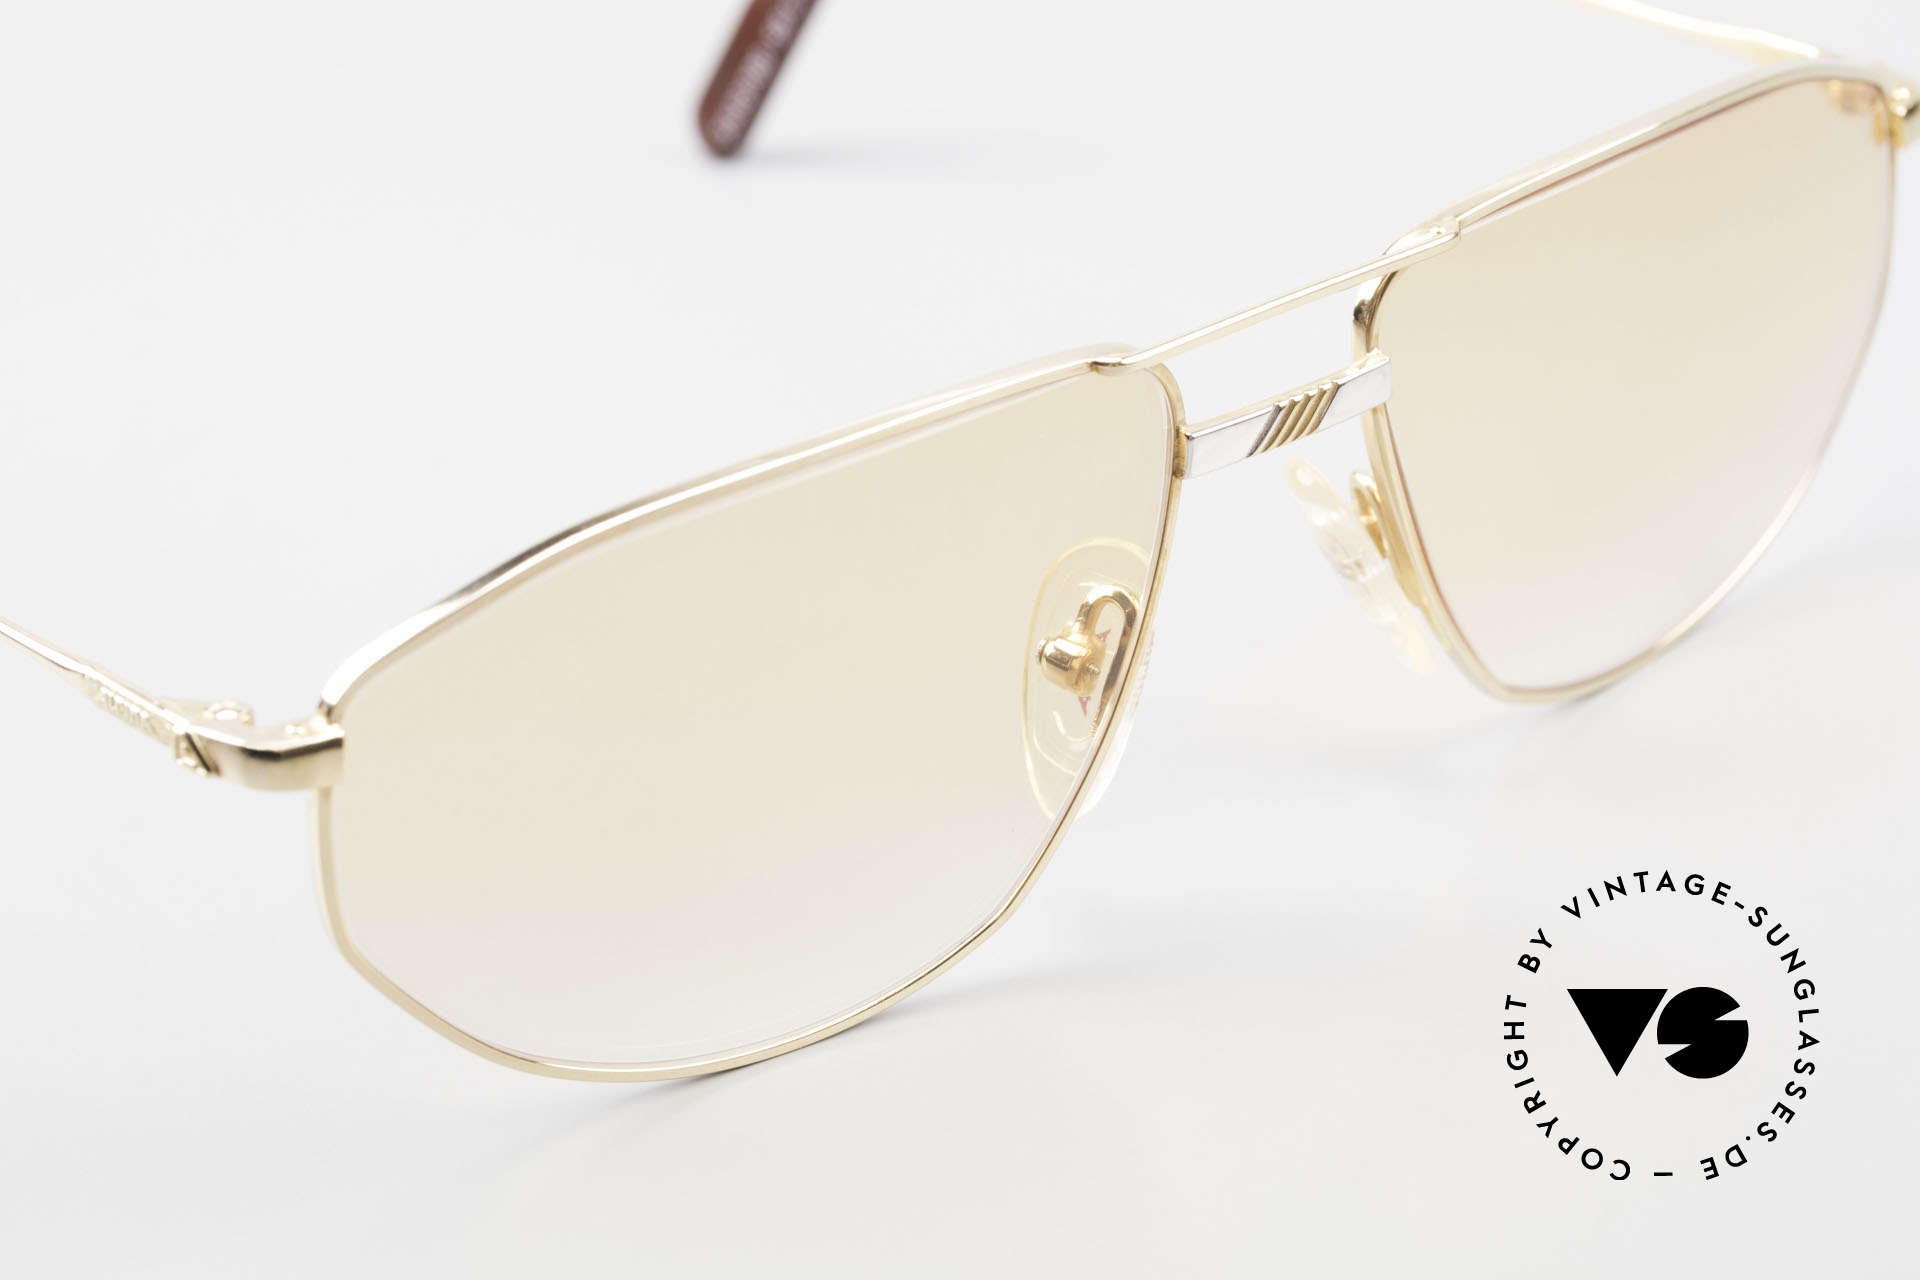 Alpina FM41 Stylish Vintage 80's Sunglasses, NO RETRO sunglasses, but a 30 years old ORIGINAL!, Made for Men and Women